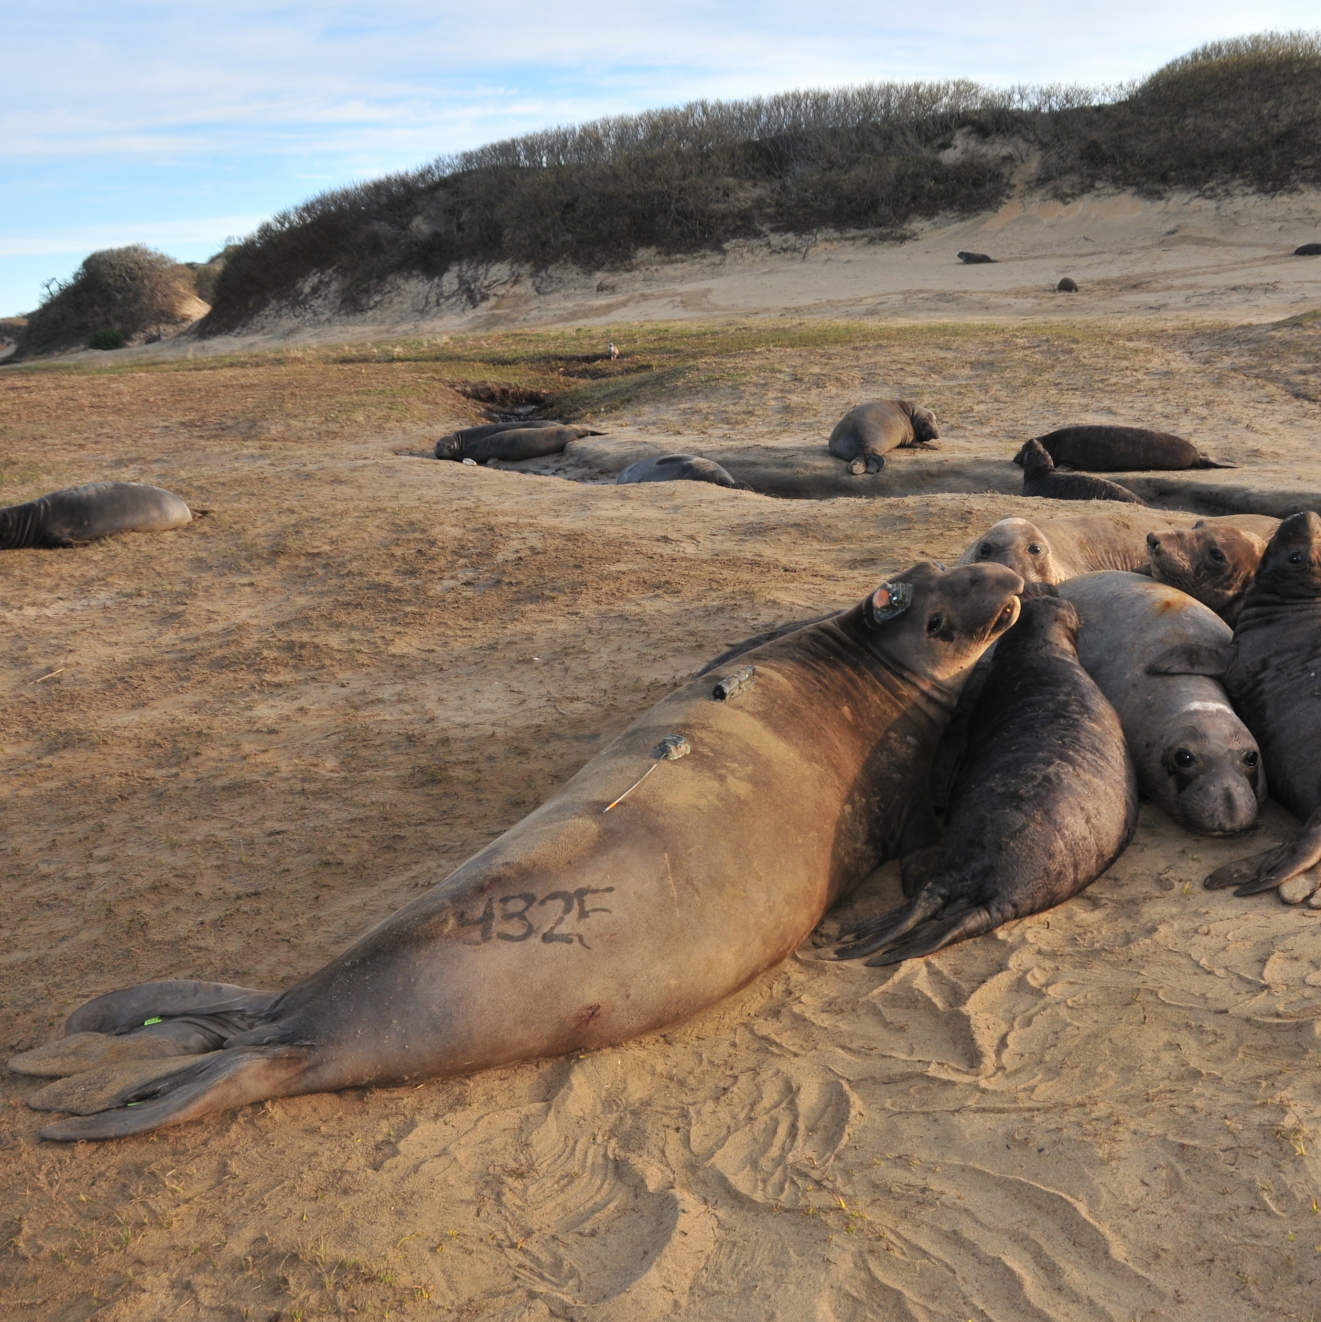 Elephant seals cluster together on the beach